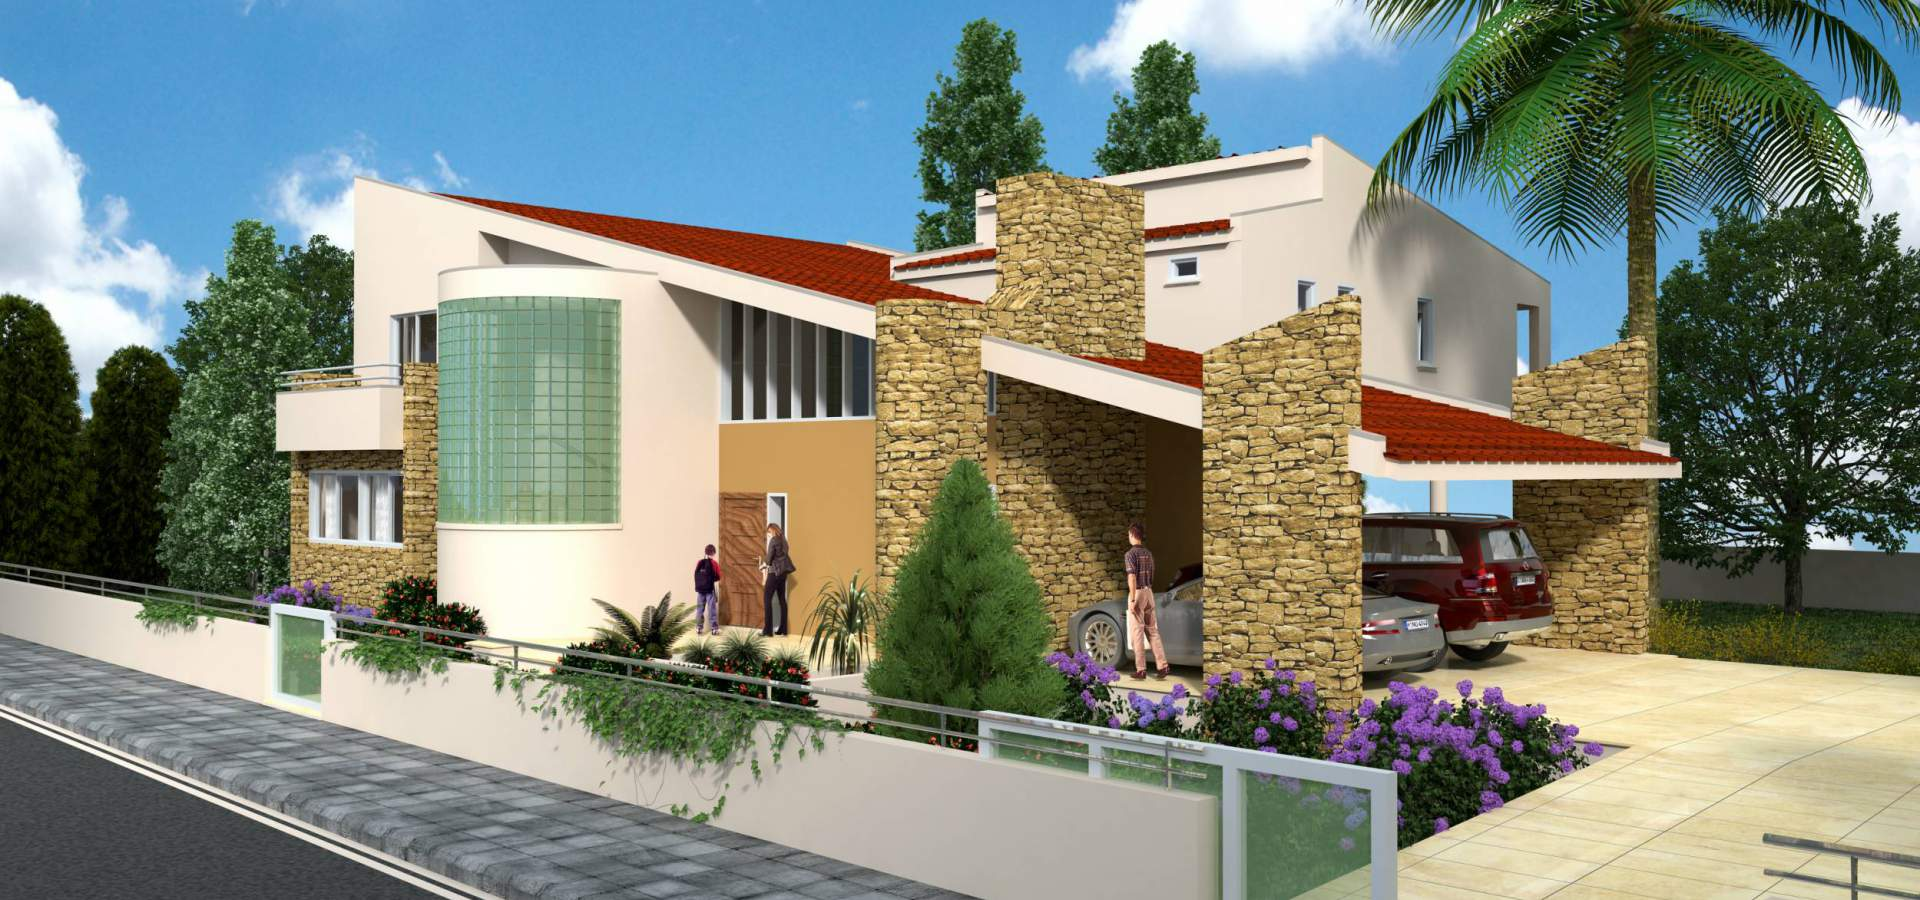 Konia Luxury Houses Exterior Design